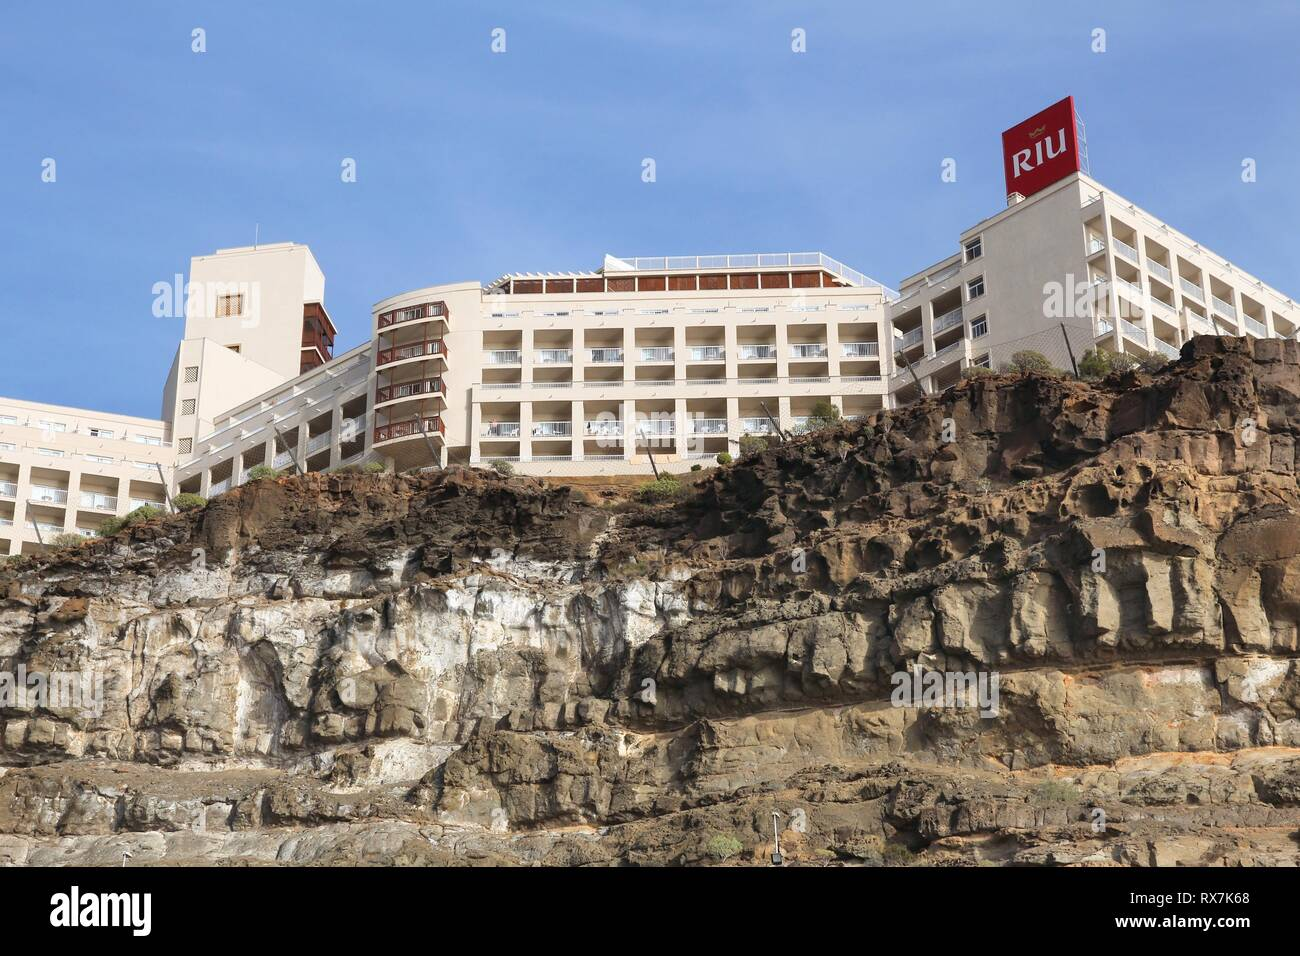 GRAN CANARIA, SPAIN - DECEMBER 6, 2015: Exterior view of Clubhotel Riu Vistamar in Gran Canaria, Spain. Riu Hotels was the 30th largest hotel chain in - Stock Image